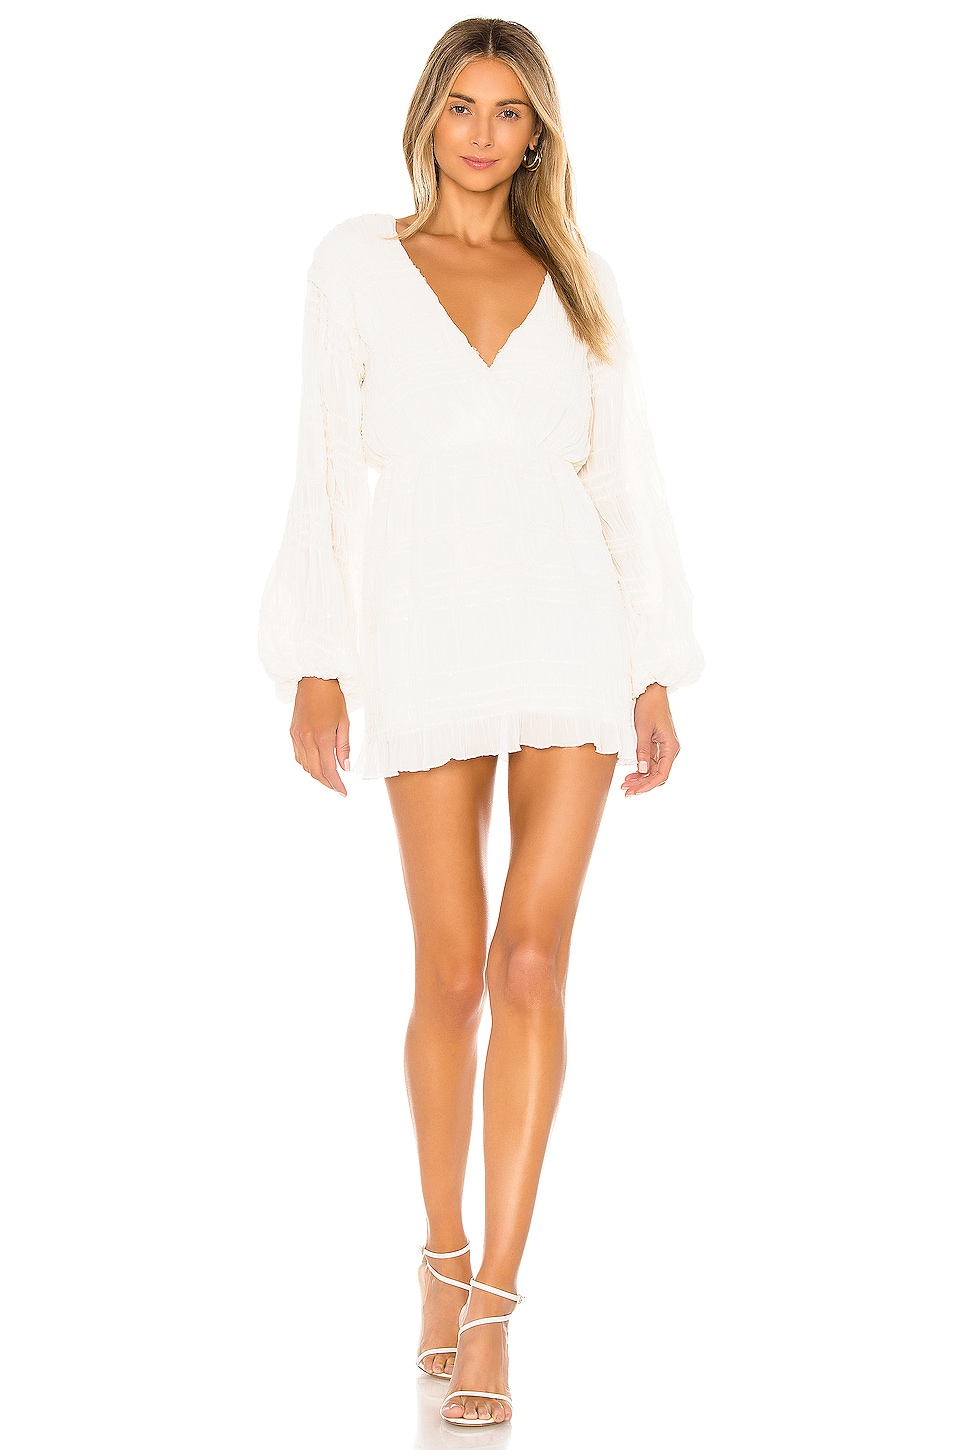 House of Harlow 1960 x REVOLVE Sylvan Dress in Ivory